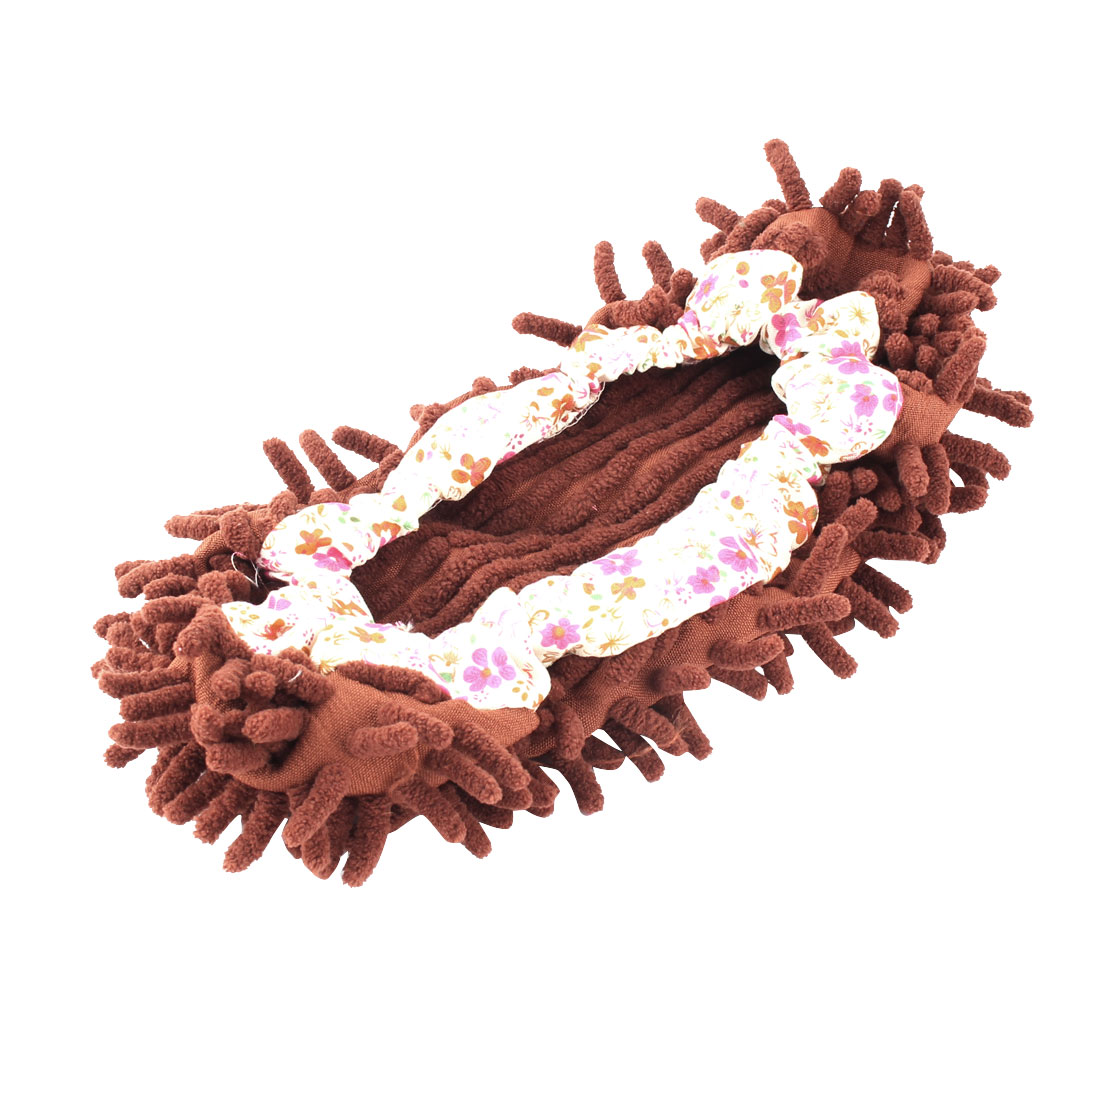 Floor House Elastic Cuff Microfiber Multifunction Cleaning Mop Slipper Shoes Cover Coffee Color